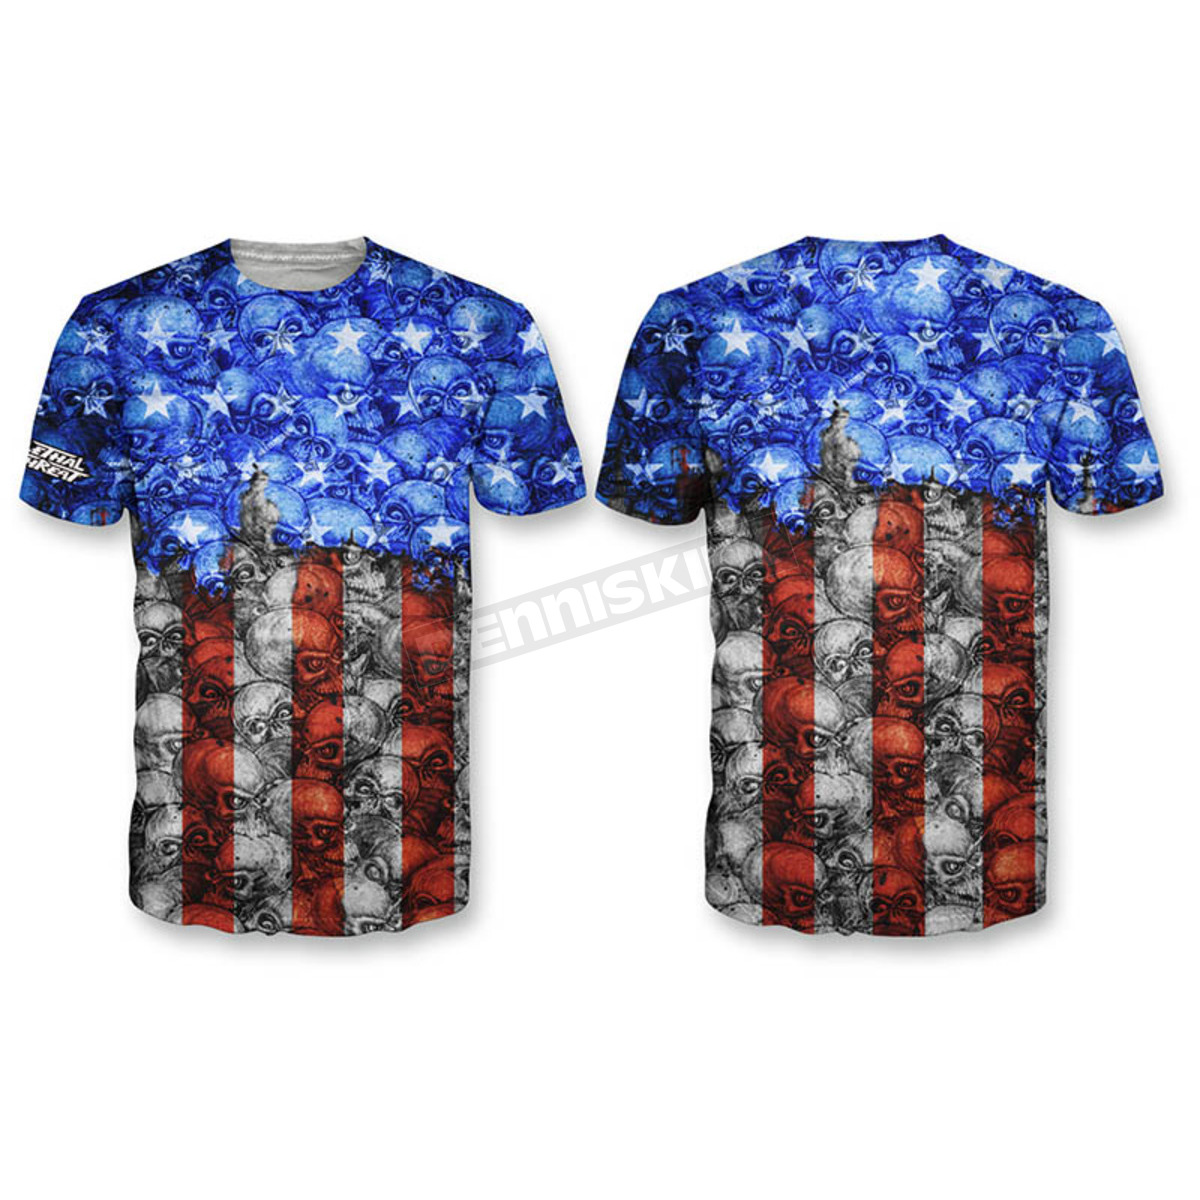 c9a9ee8c Lethal Threat Camo USA Skull T-Shirt - SC50504M Harley Motorcycle ...